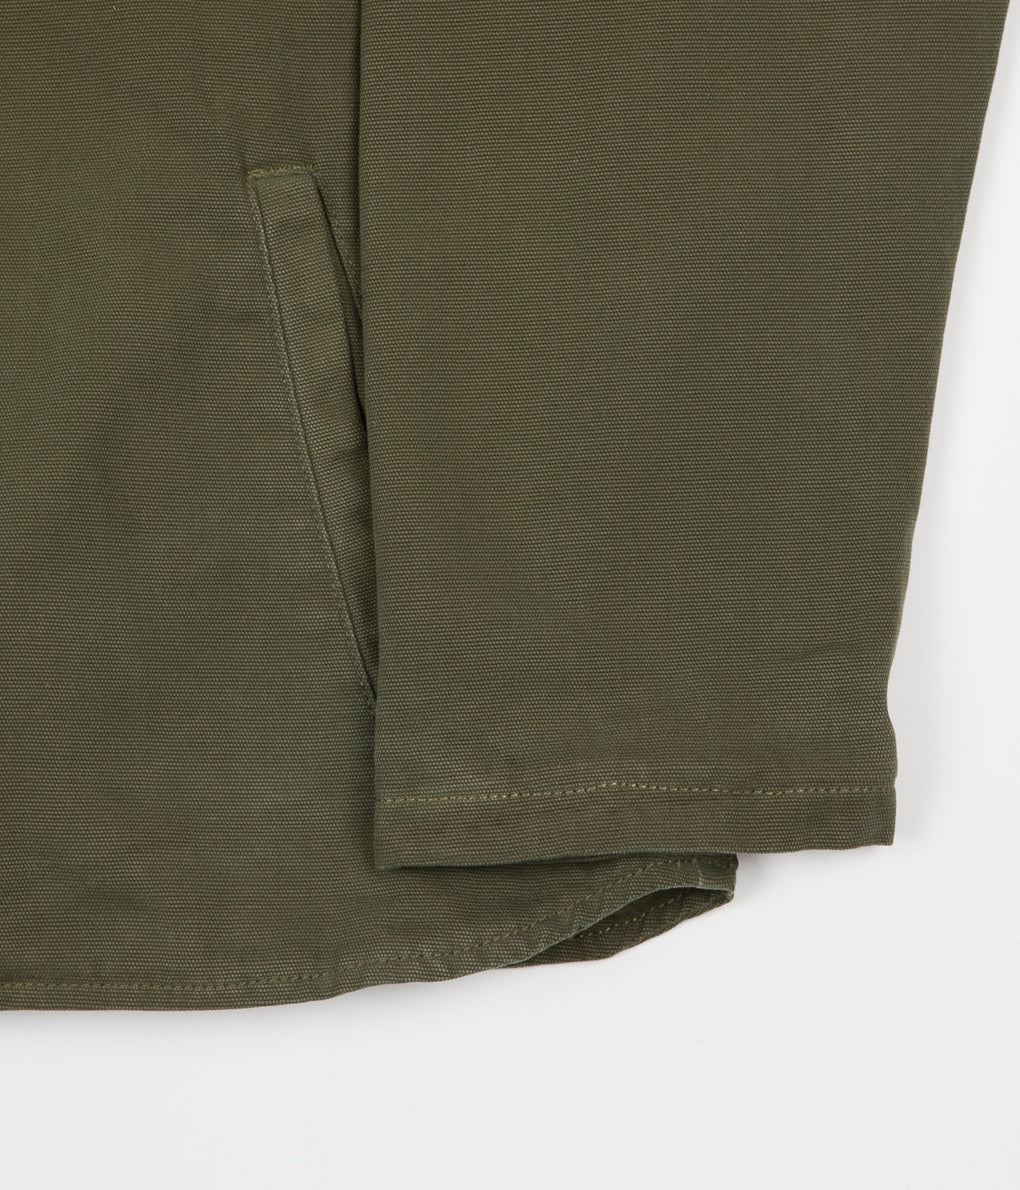 Mollusk Fall Deck Jacket - Mash Green